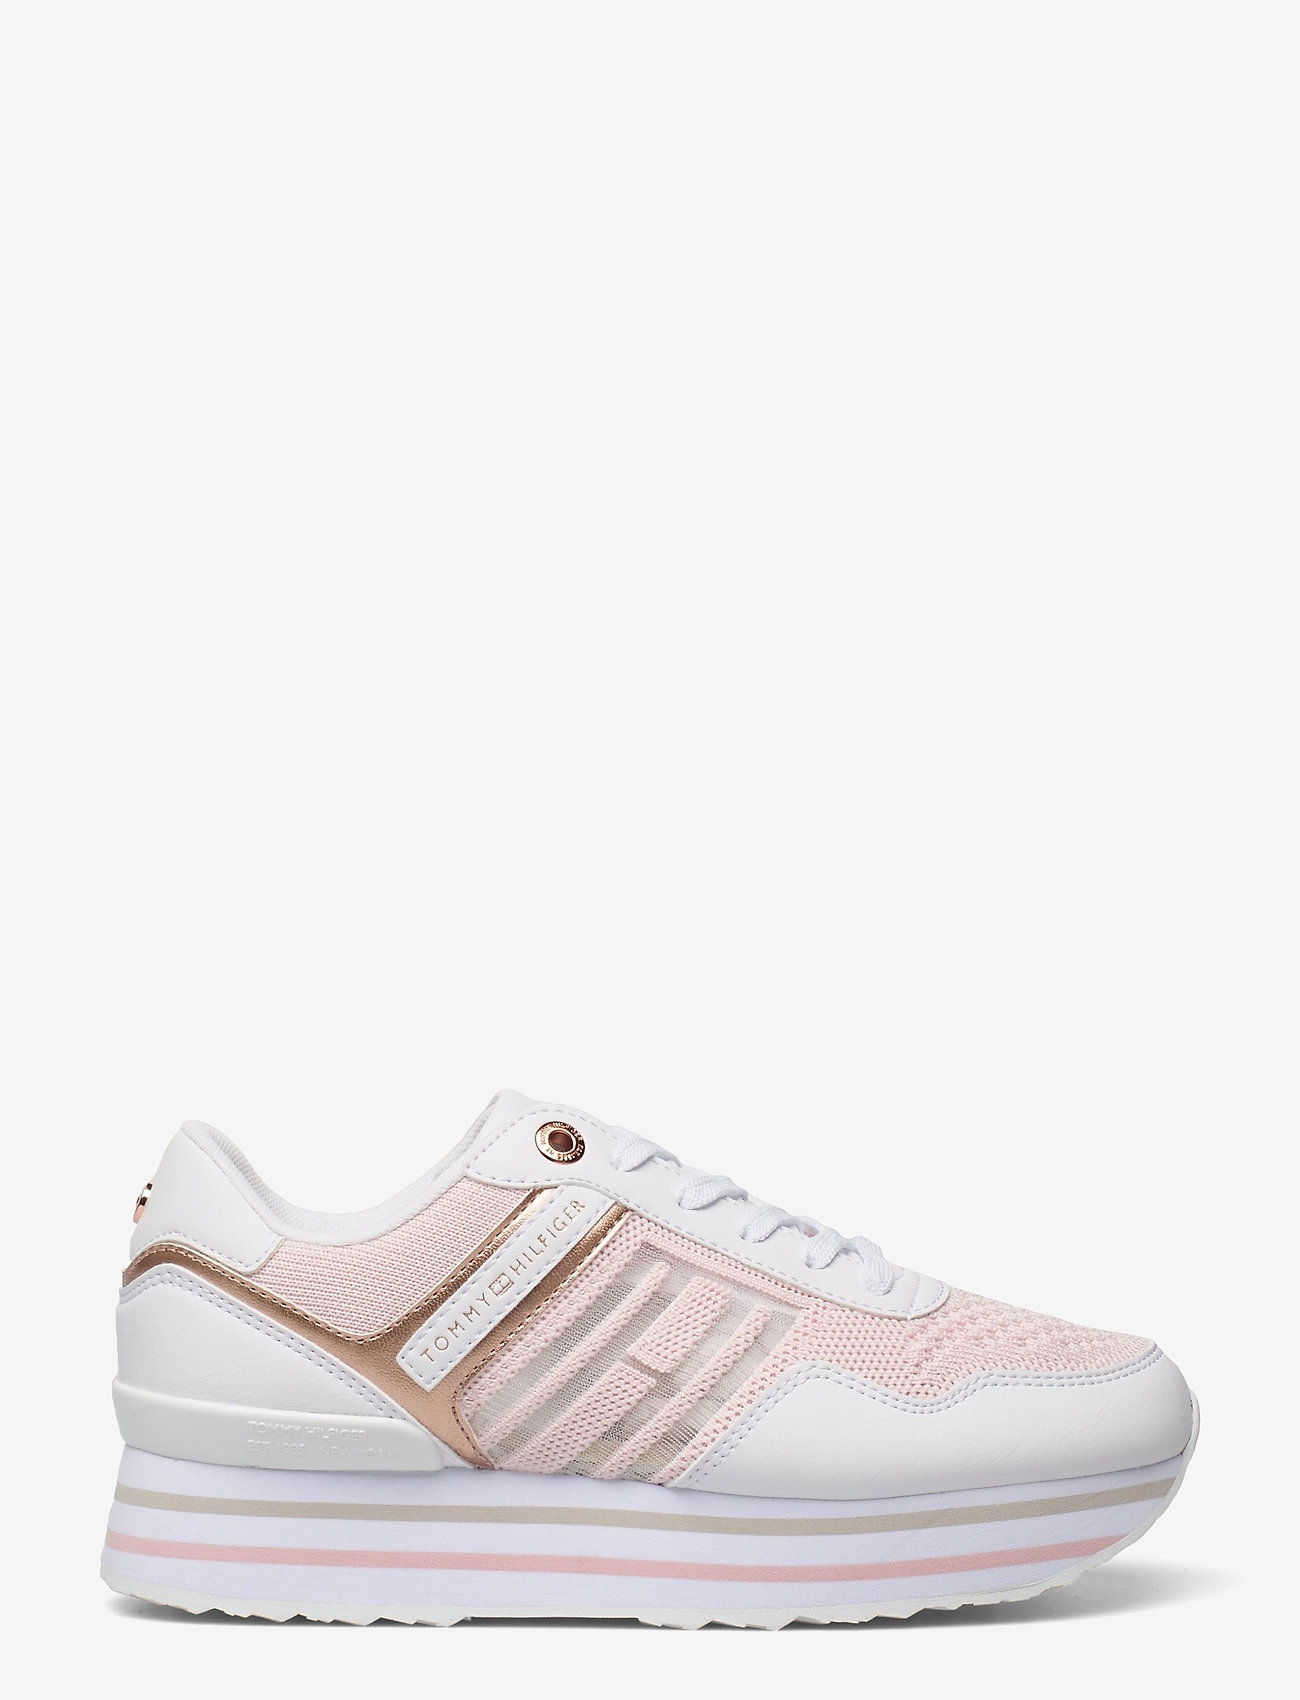 Tommy Hilfiger - KNITTED FLATFORM SNEAKER - low top sneakers - light pink - 1